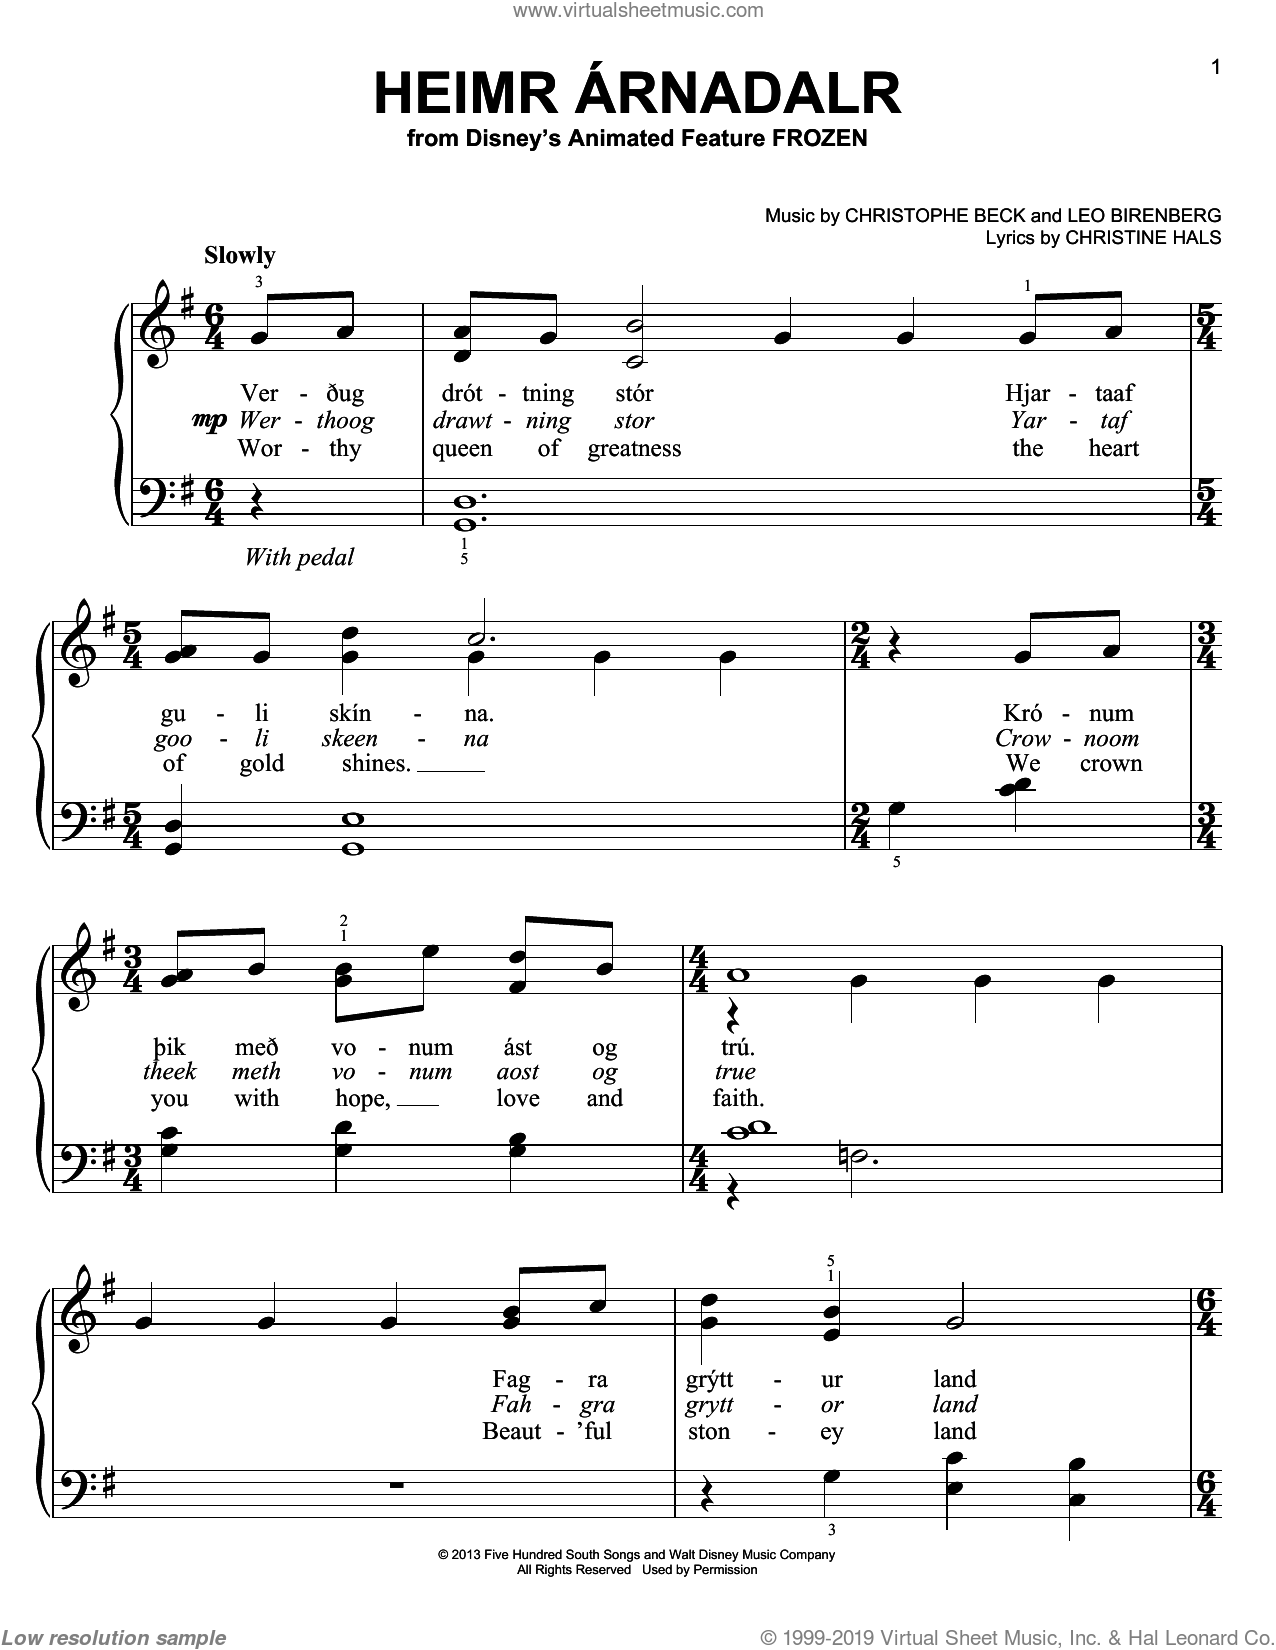 Heimr Arnadalr sheet music for piano solo by Christophe Beck and Christine Hals. Score Image Preview.